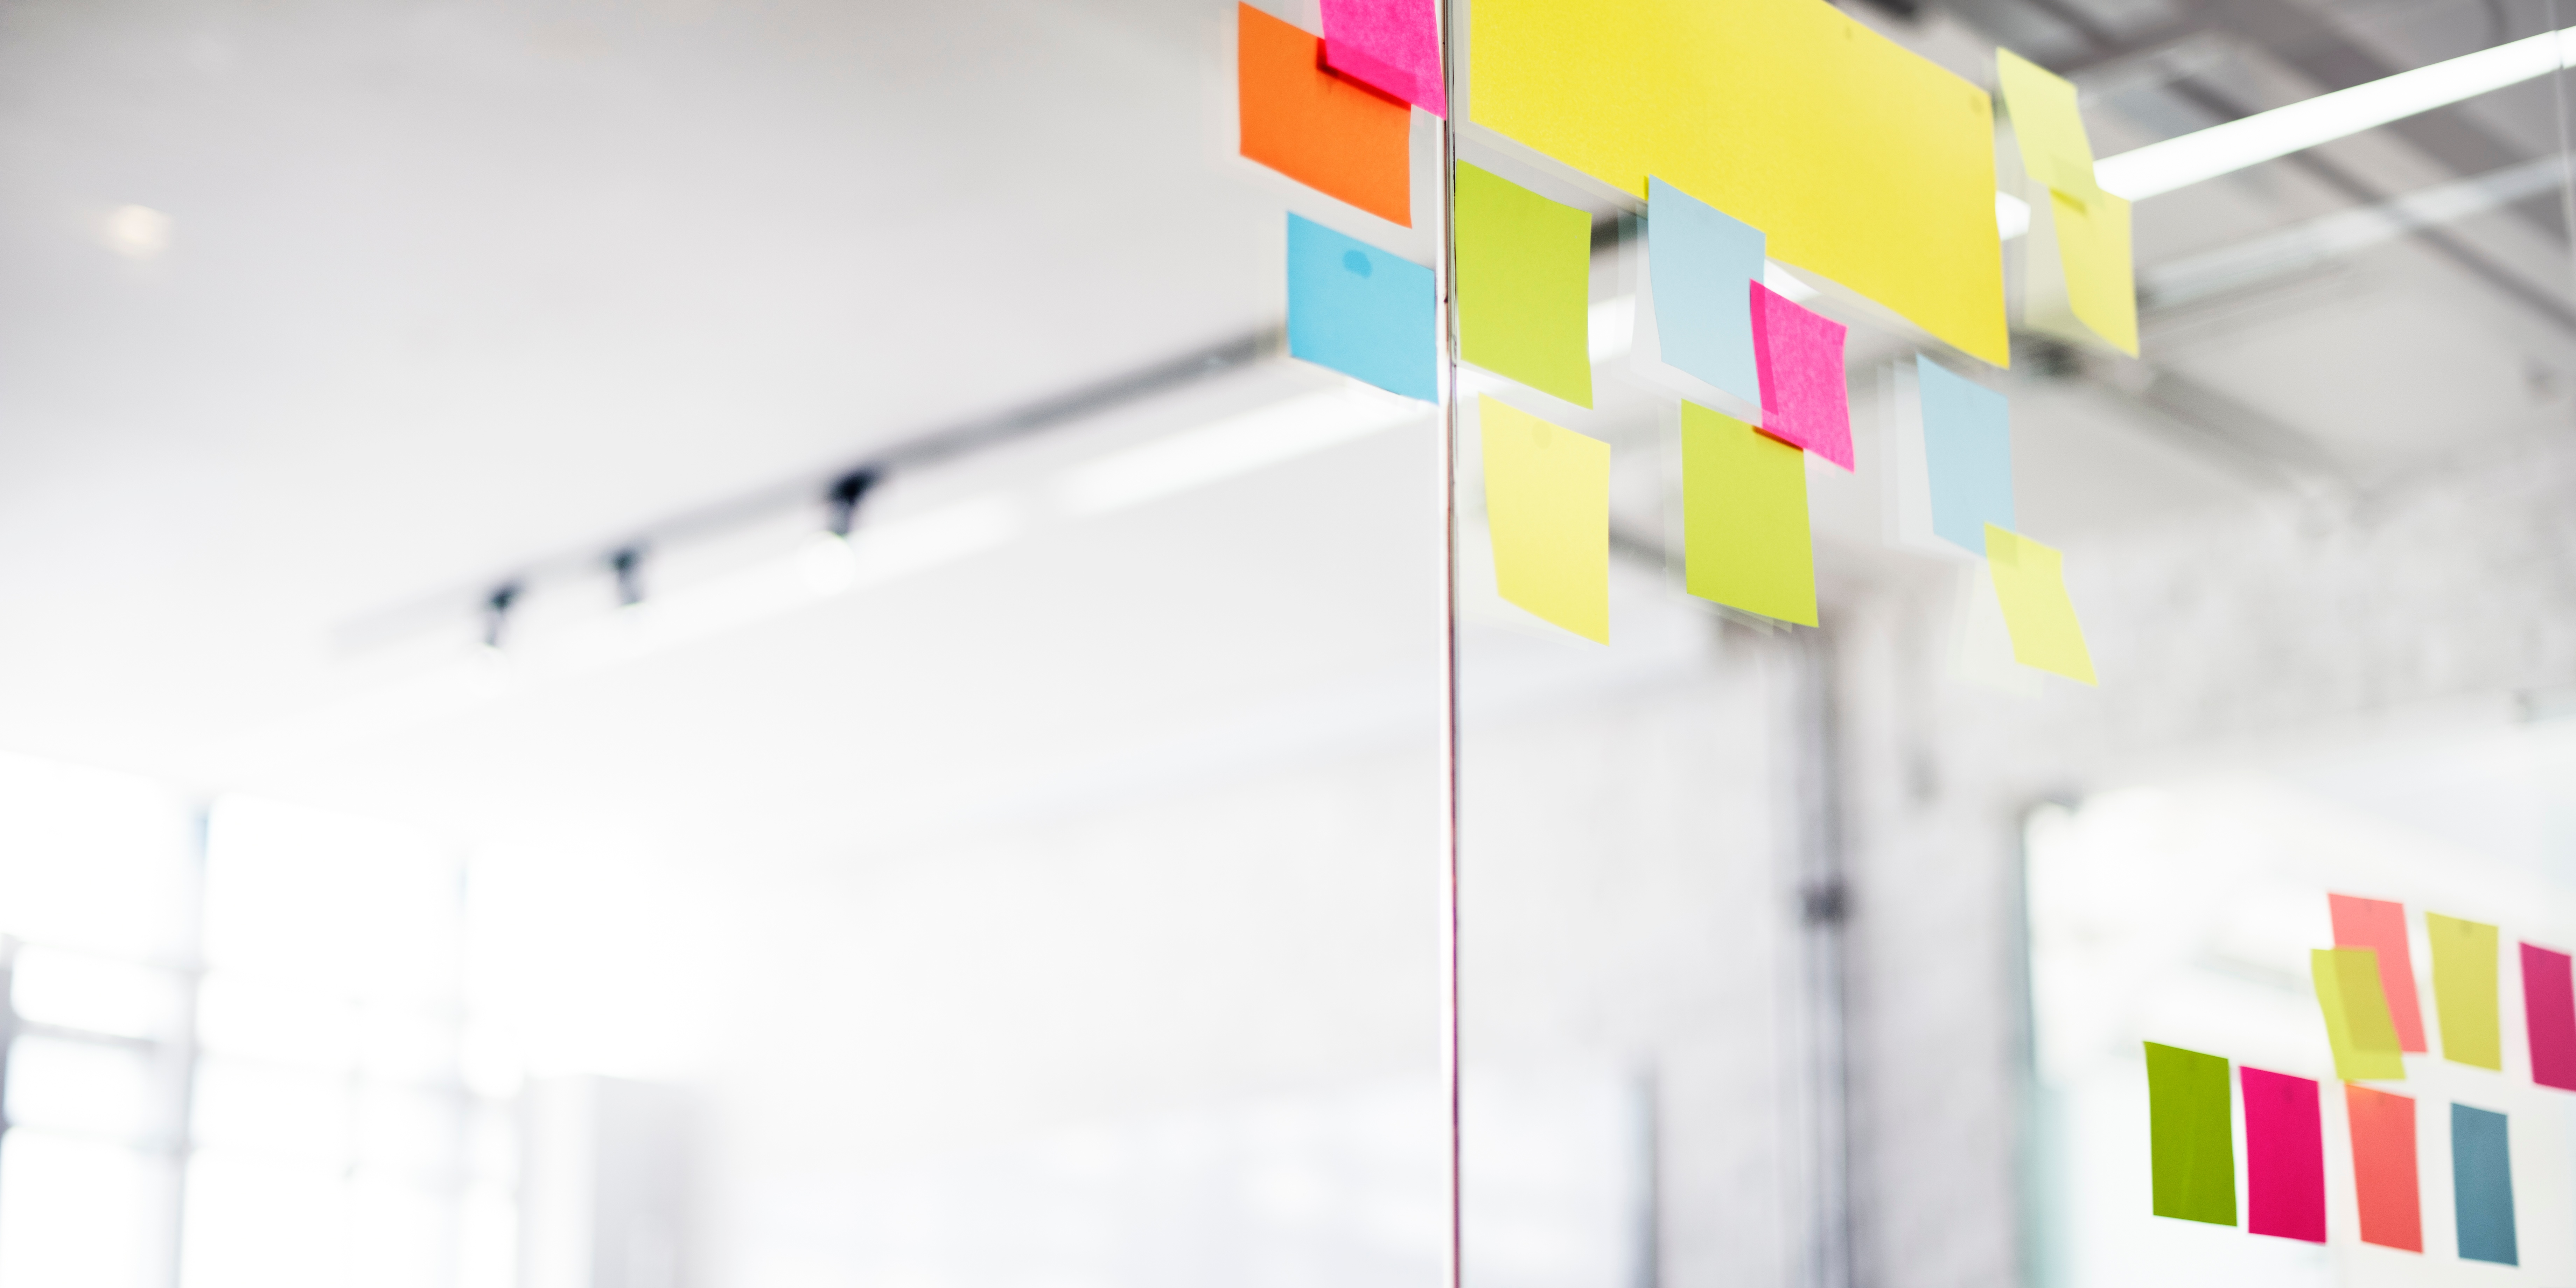 colorful-sticky-notes-on-glass